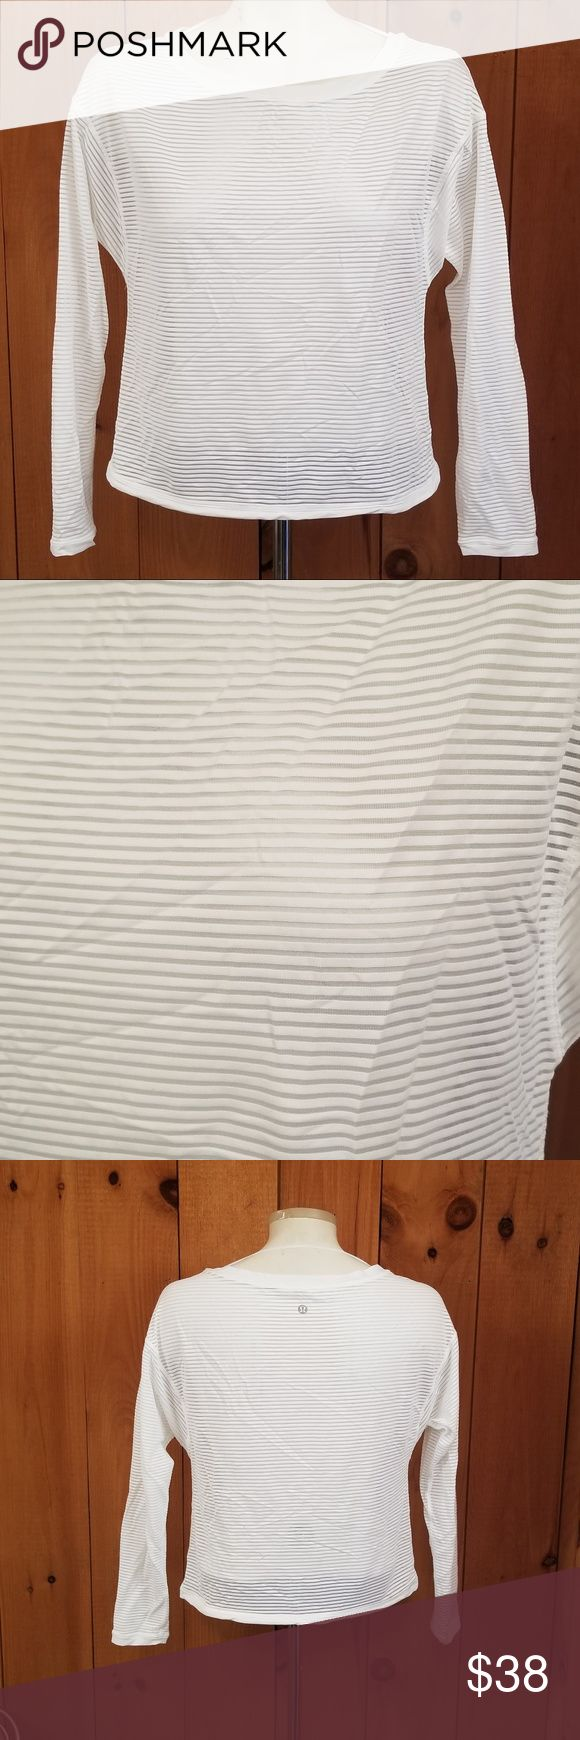 "Lululemon Women's White Stripe Sheer L/S Gym Top Lululemon Women's White Stripe Sheer Long Sleeve Workout Cinch Waist Top Large  17"" chest 18"" underarm to wrist  no size tag we are assuming its a large based on the measurements  made of a lightweight poly material and it is semi sheer with waist drawstrings to cinch the bottom in lululemon Tops"